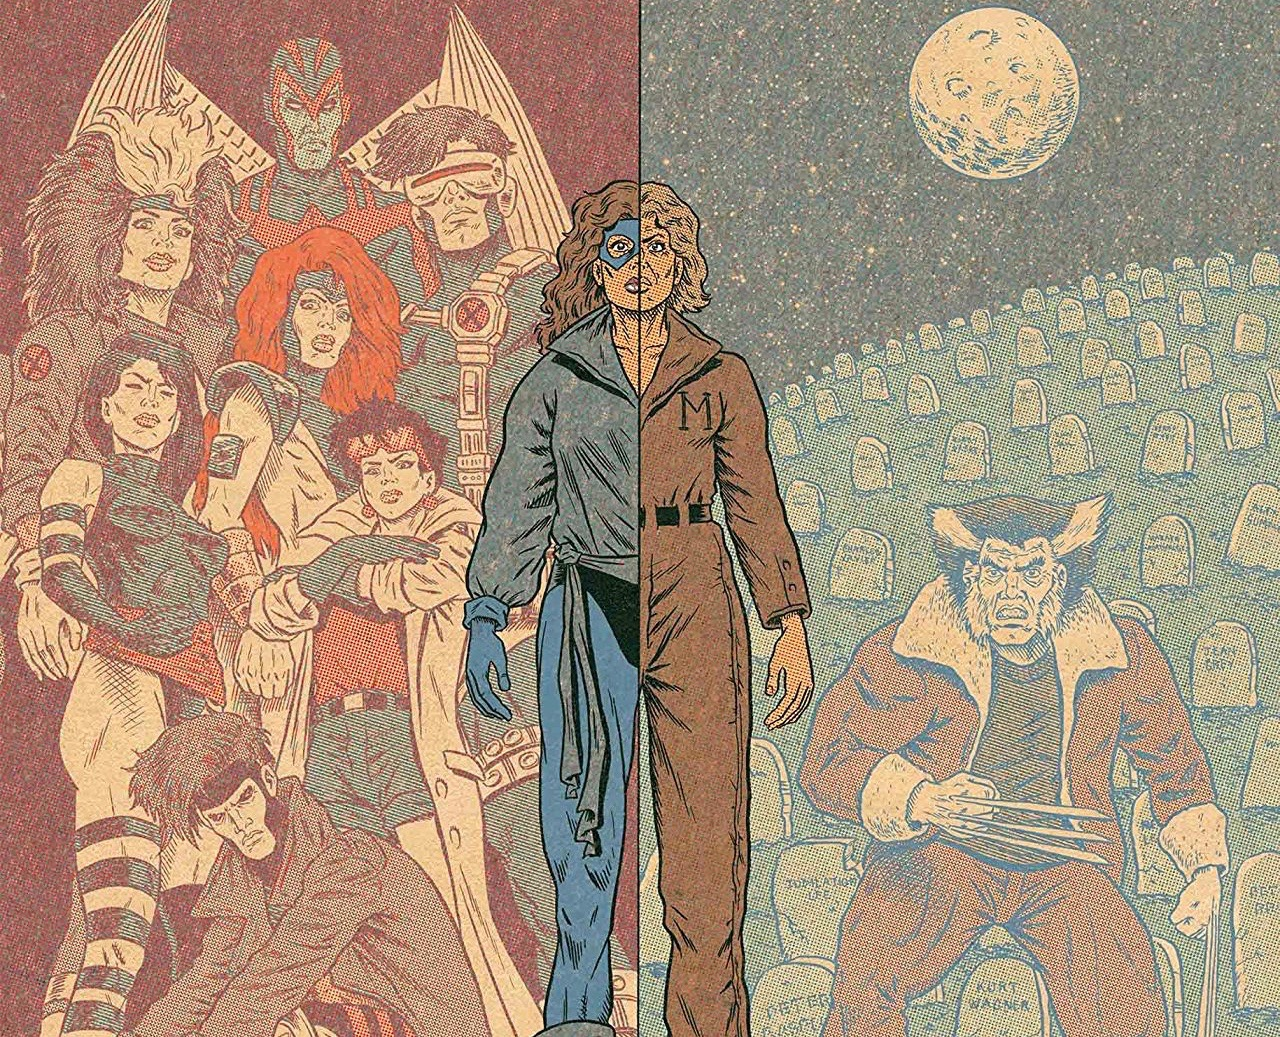 Age Of X-Tinction: Writer And Illustrator Ed Piskor